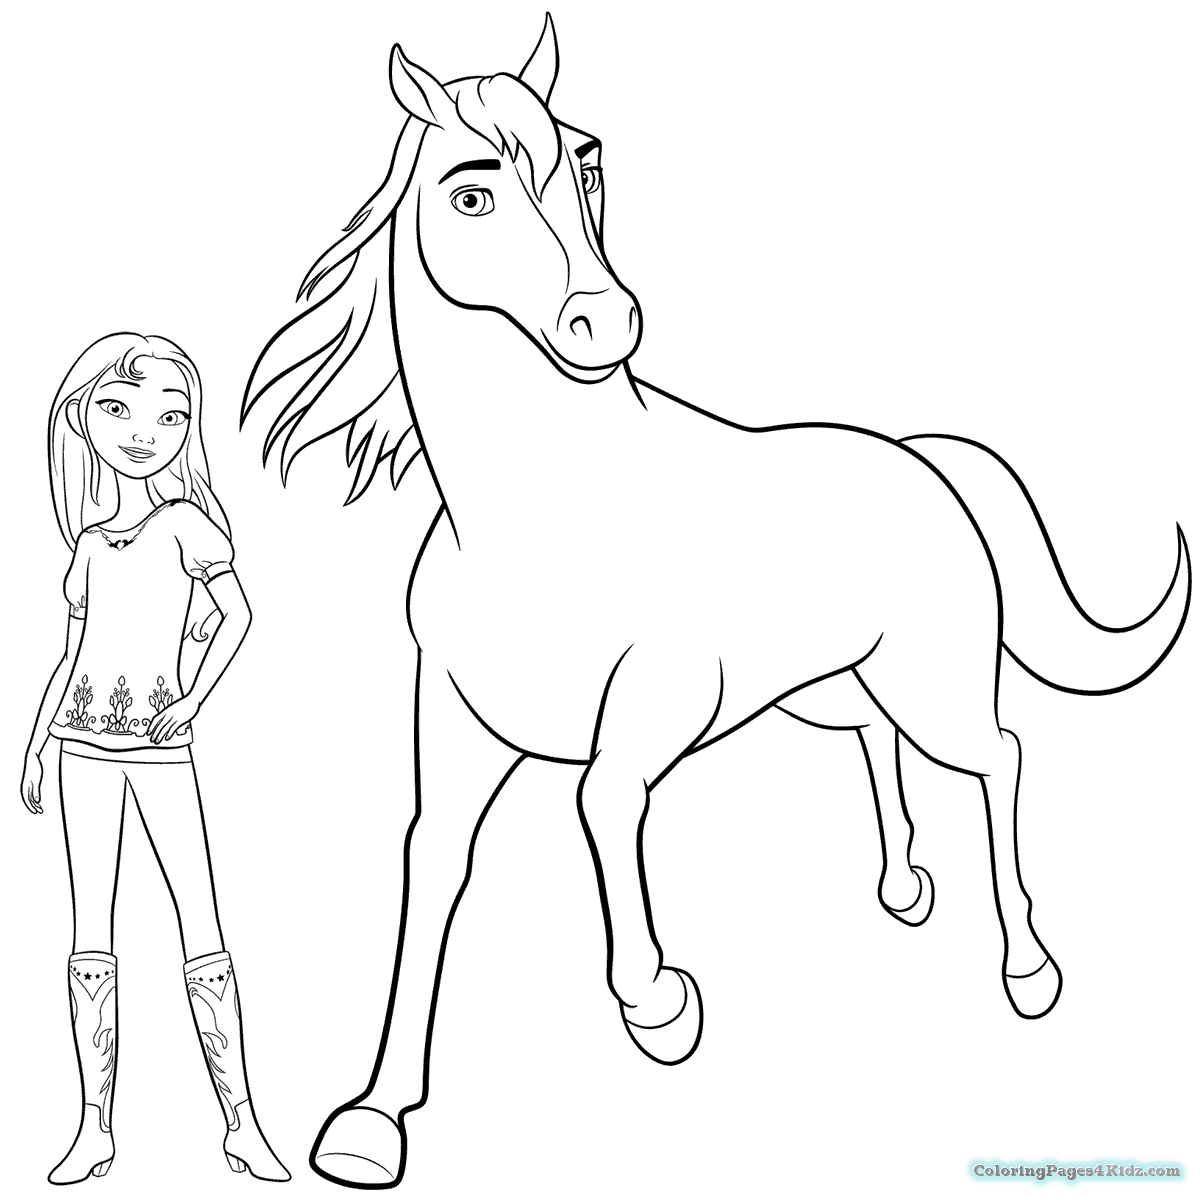 1200x1200 Spirit Riding Free Coloring Pages For Kids Best